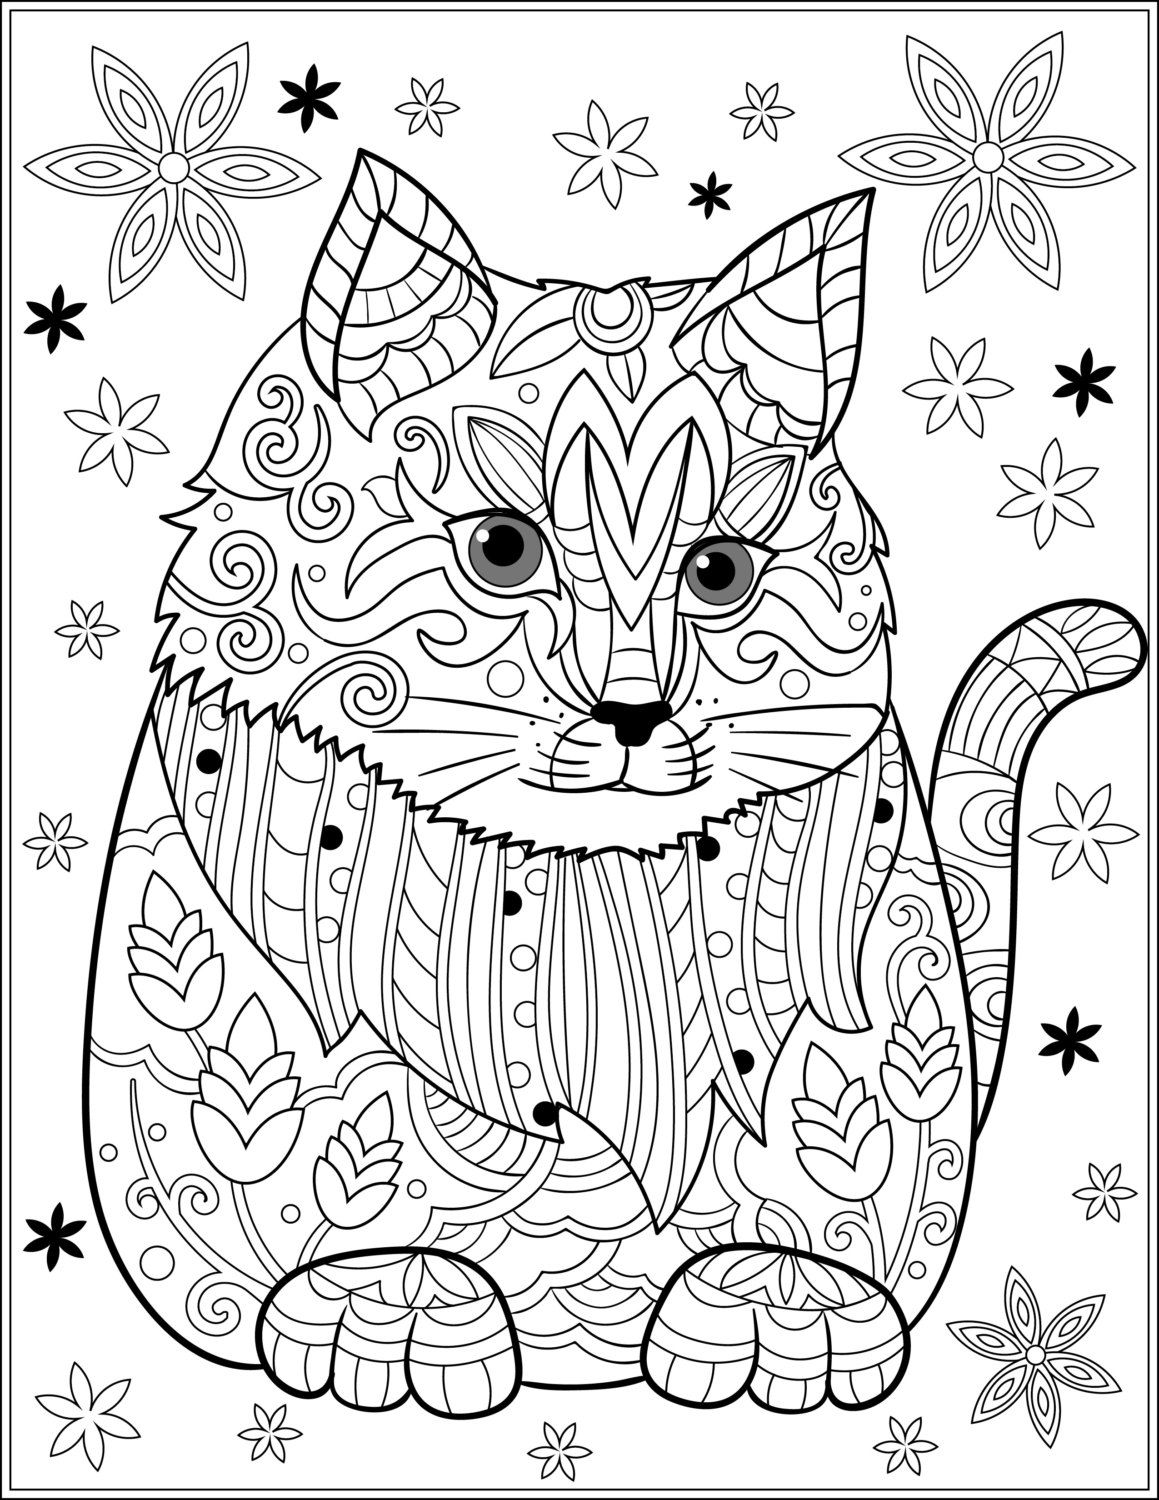 Stress relieving cats coloring - Cat Stress Relieving Designs Patterns Adult By Liltcoloringbooks